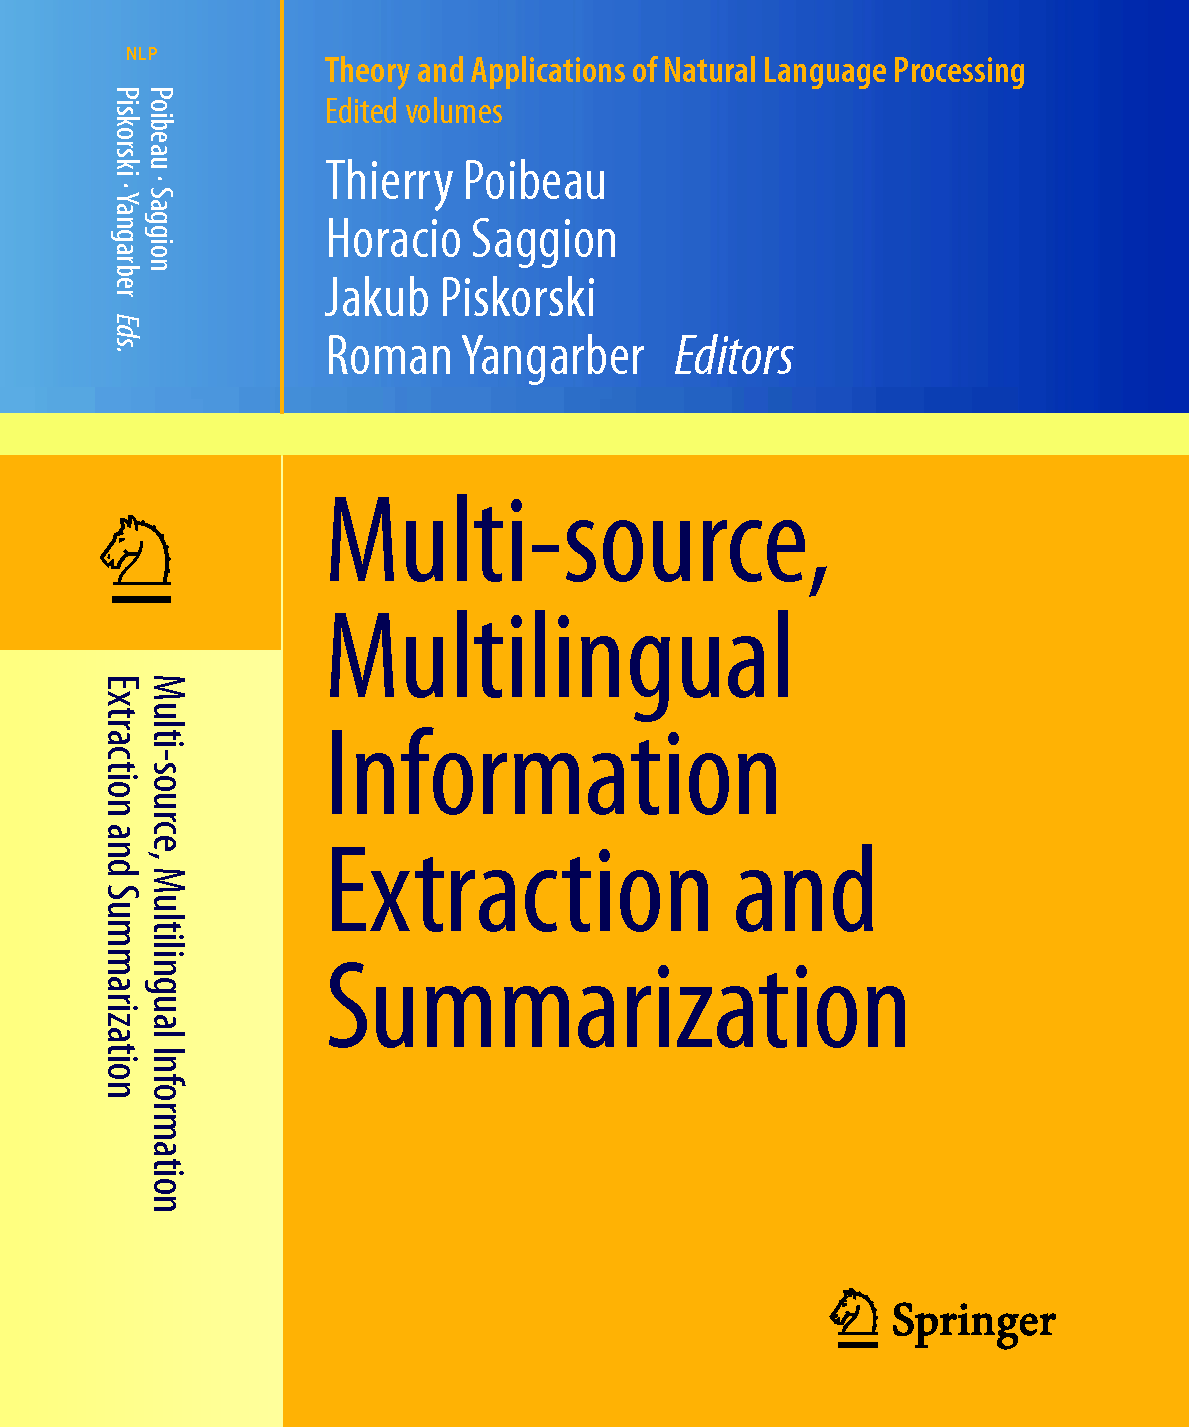 Cover: Multi-source, Multilingual Information                       Extraction and Summarization